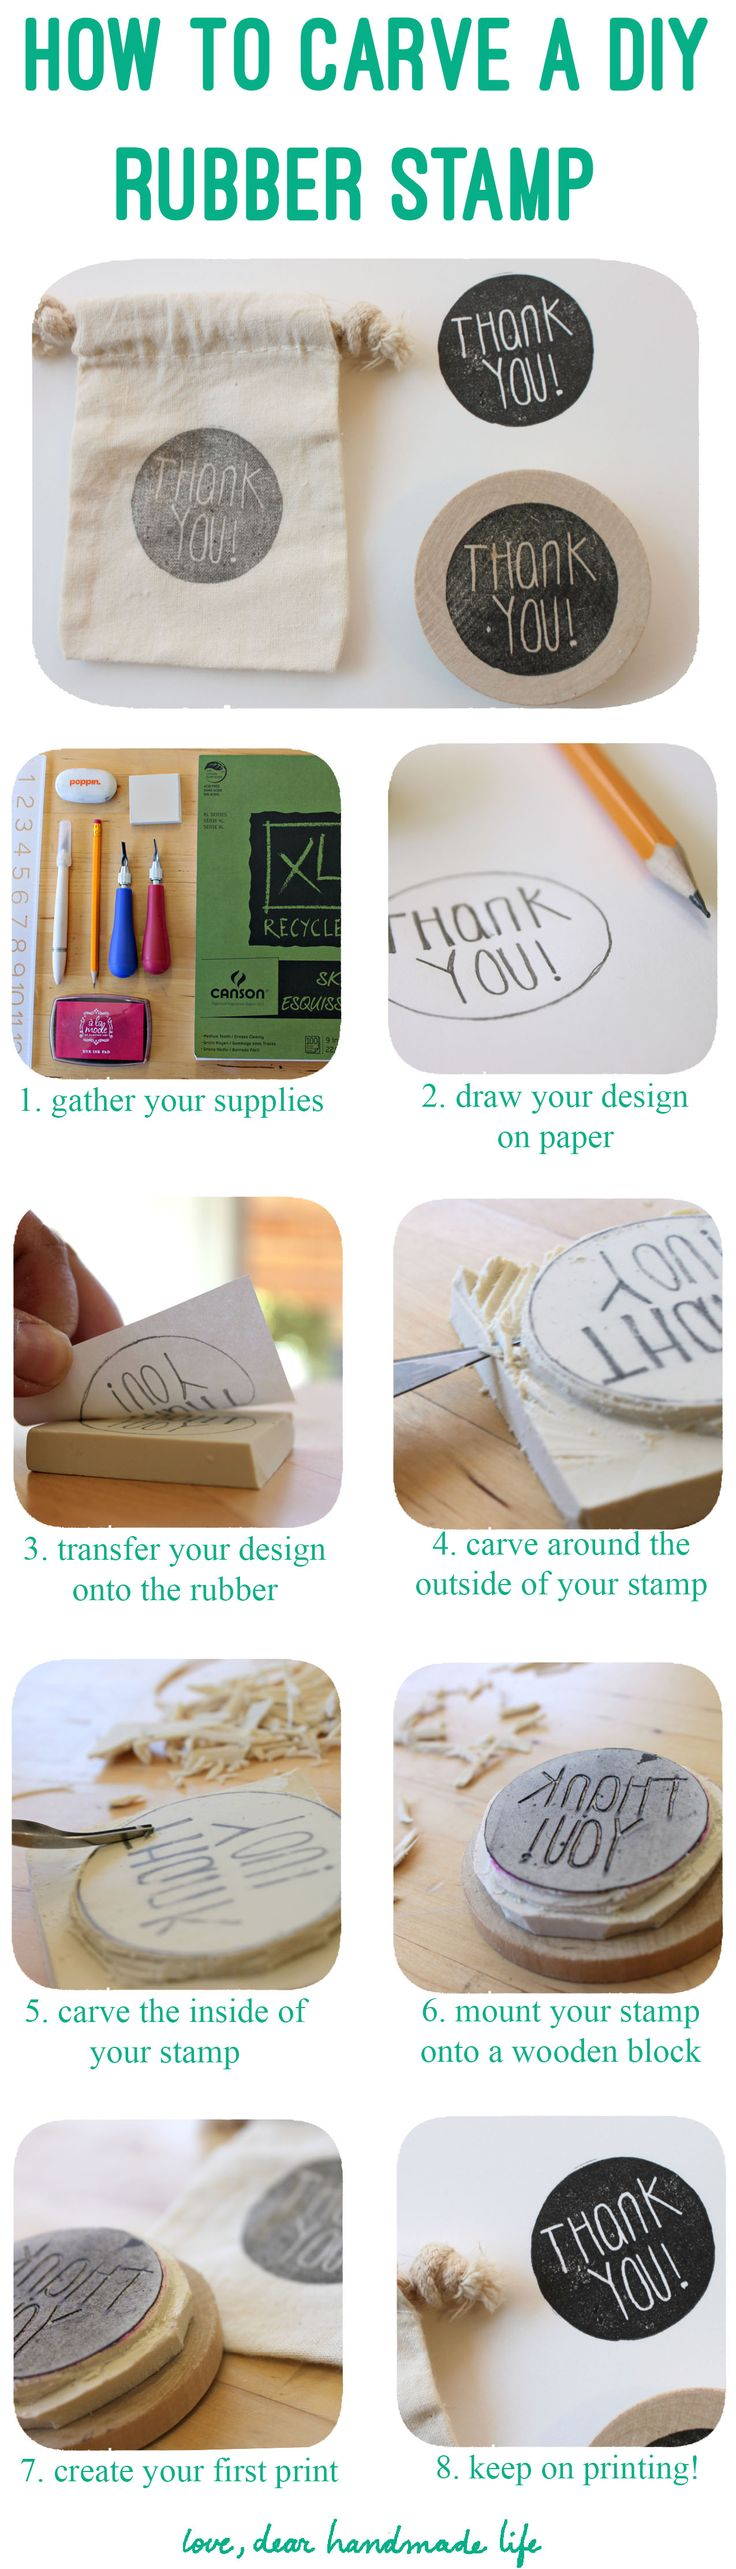 DIY: How To Carved Rubber Stamp